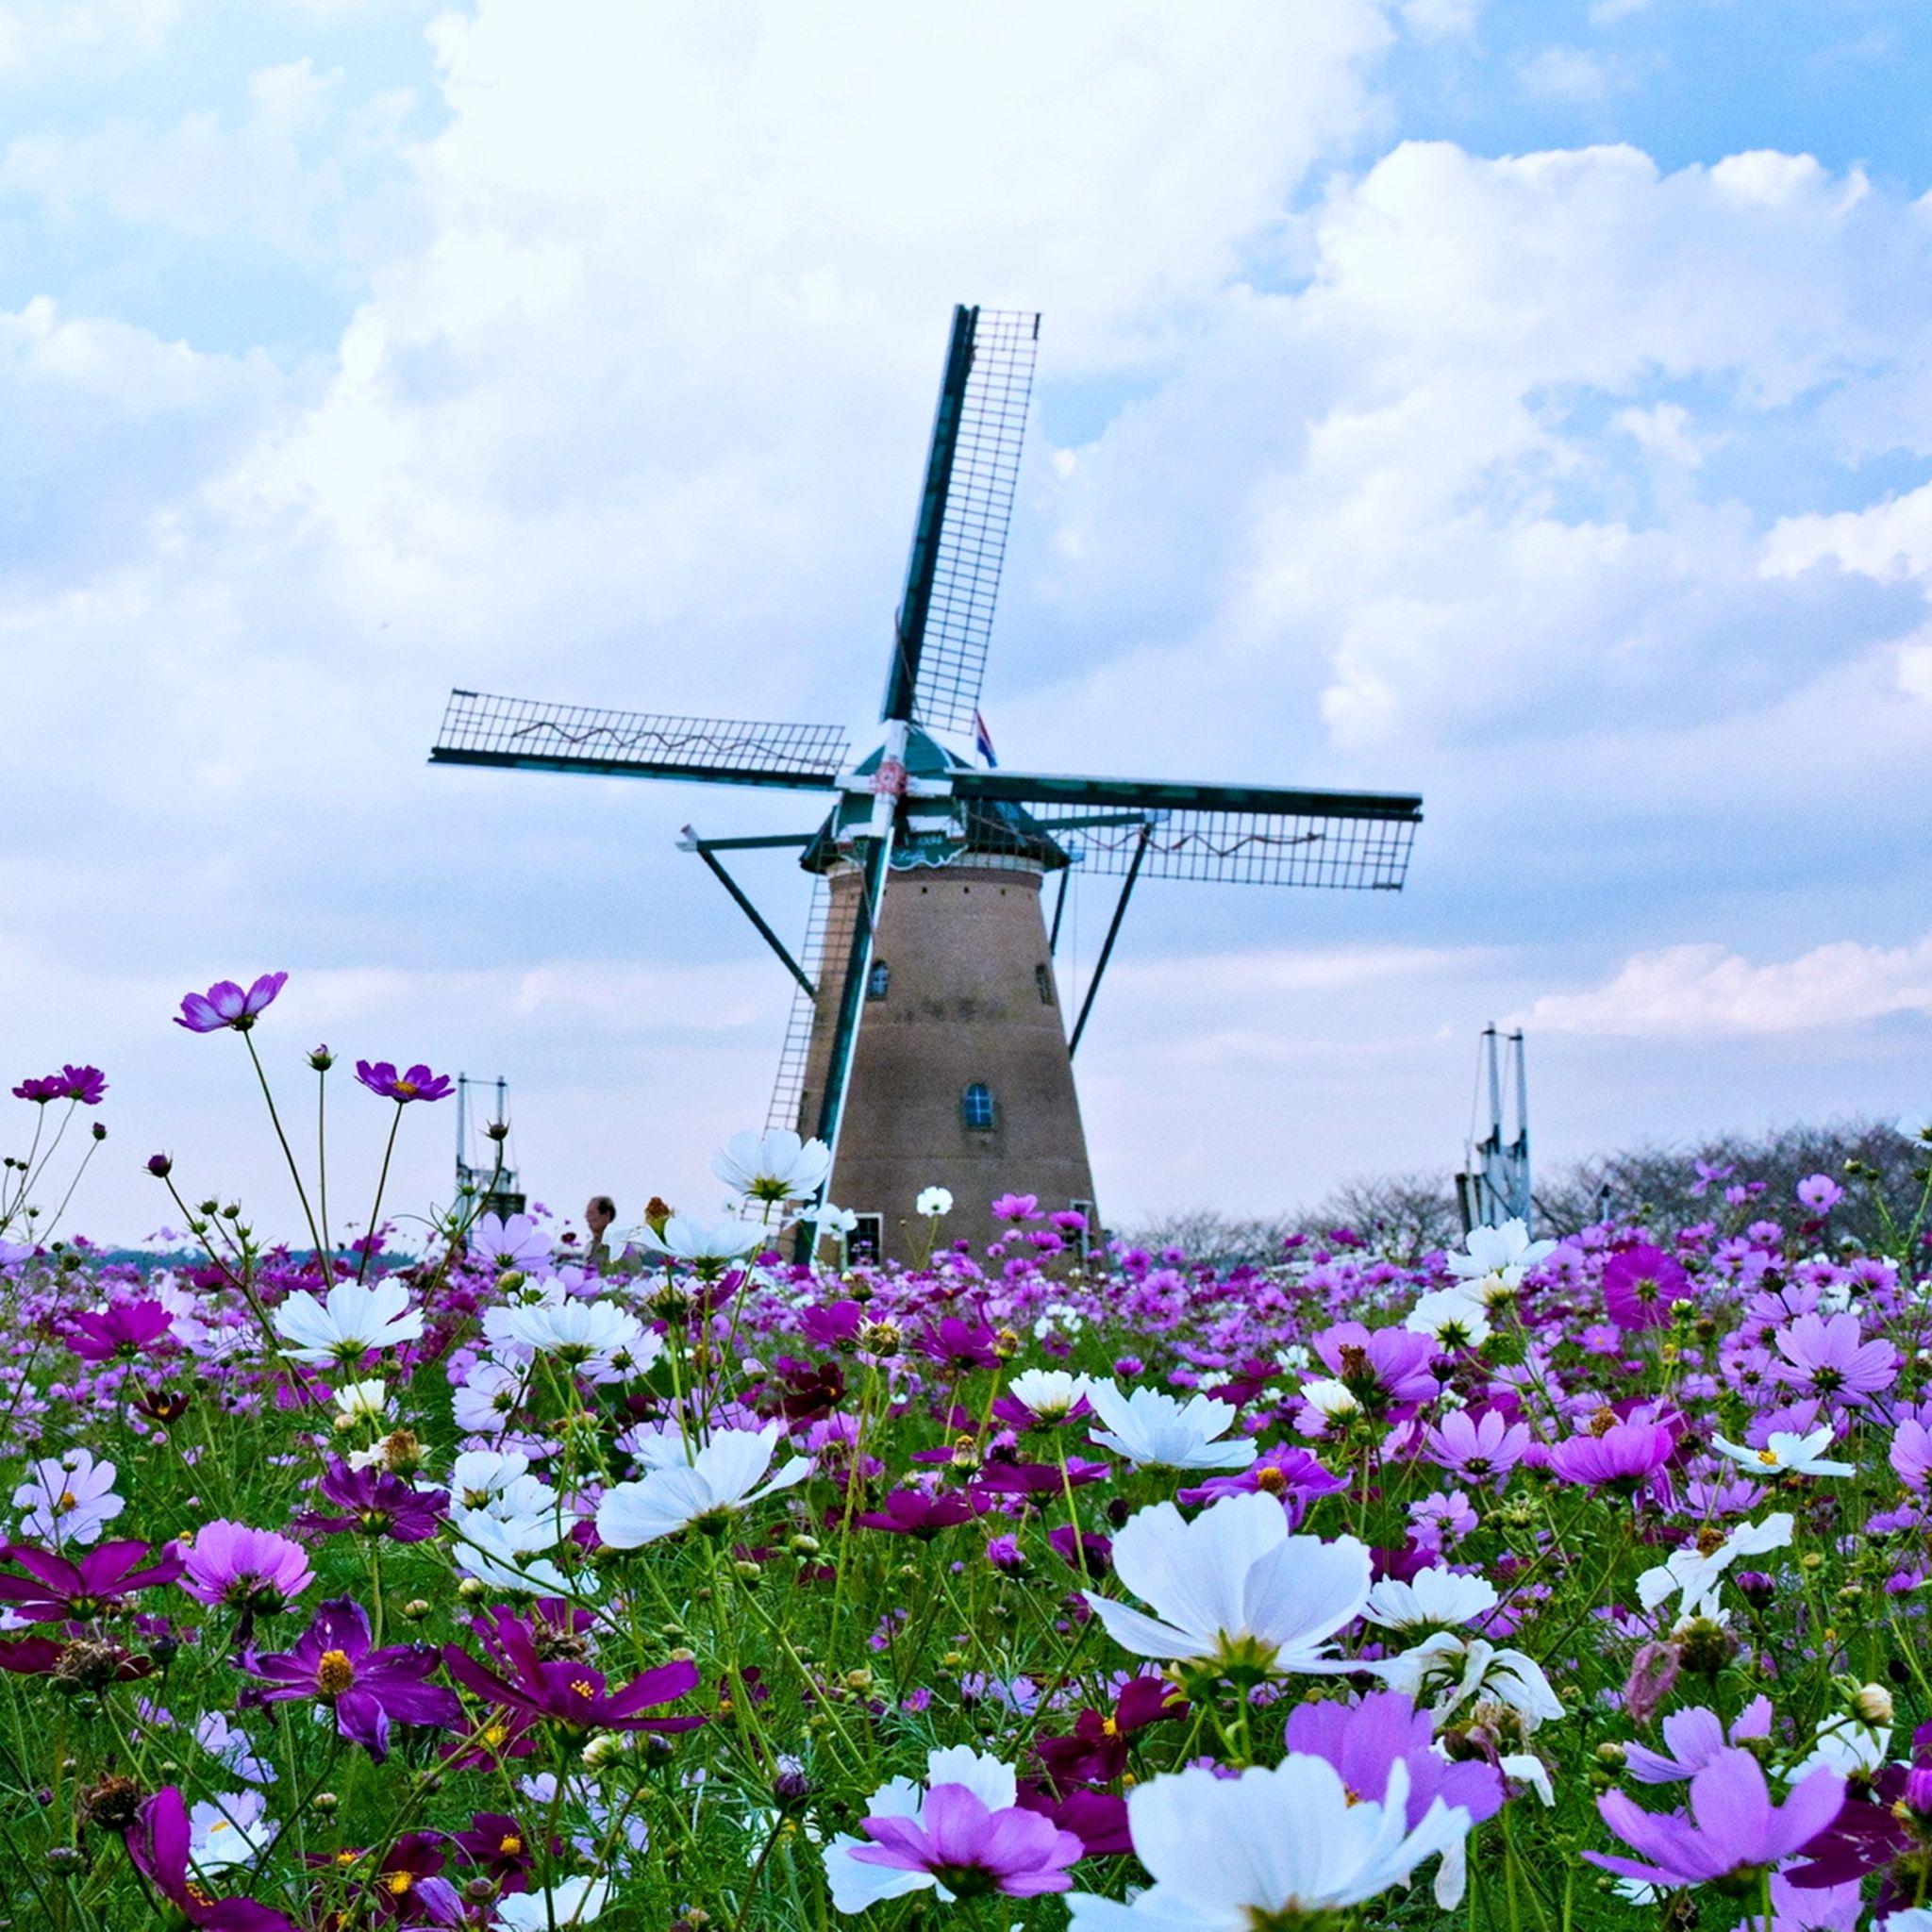 Field Flower Landscape Nature Spring Windmill Tap To See More Windmill Stock Wallpapers Mobile9 Stock Wallpaper Wallpaper Windmill